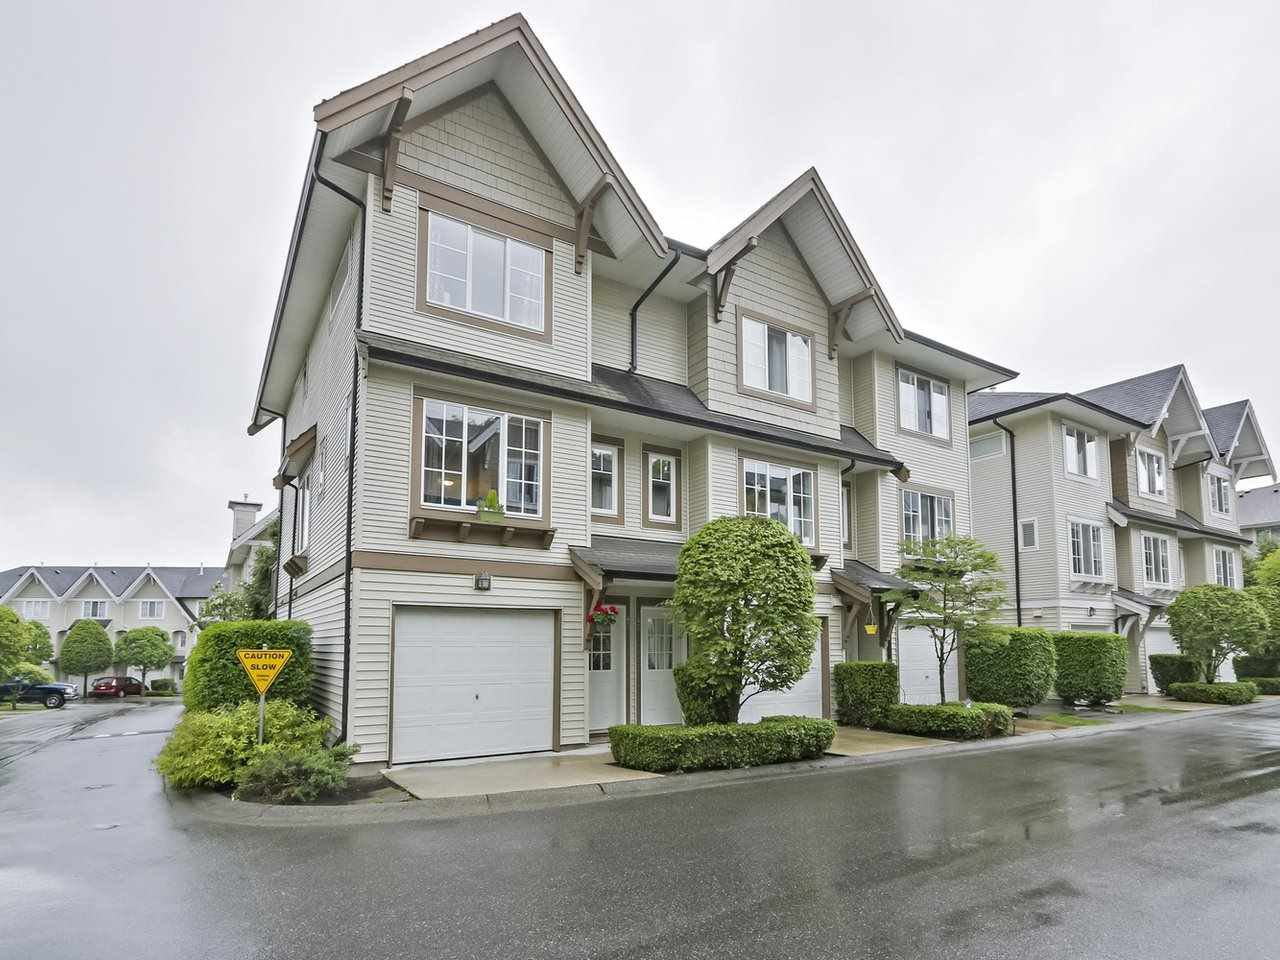 """Main Photo: 43 20540 66TH Avenue in Langley: Willoughby Heights Townhouse for sale in """"Amberleigh"""" : MLS®# R2370760"""